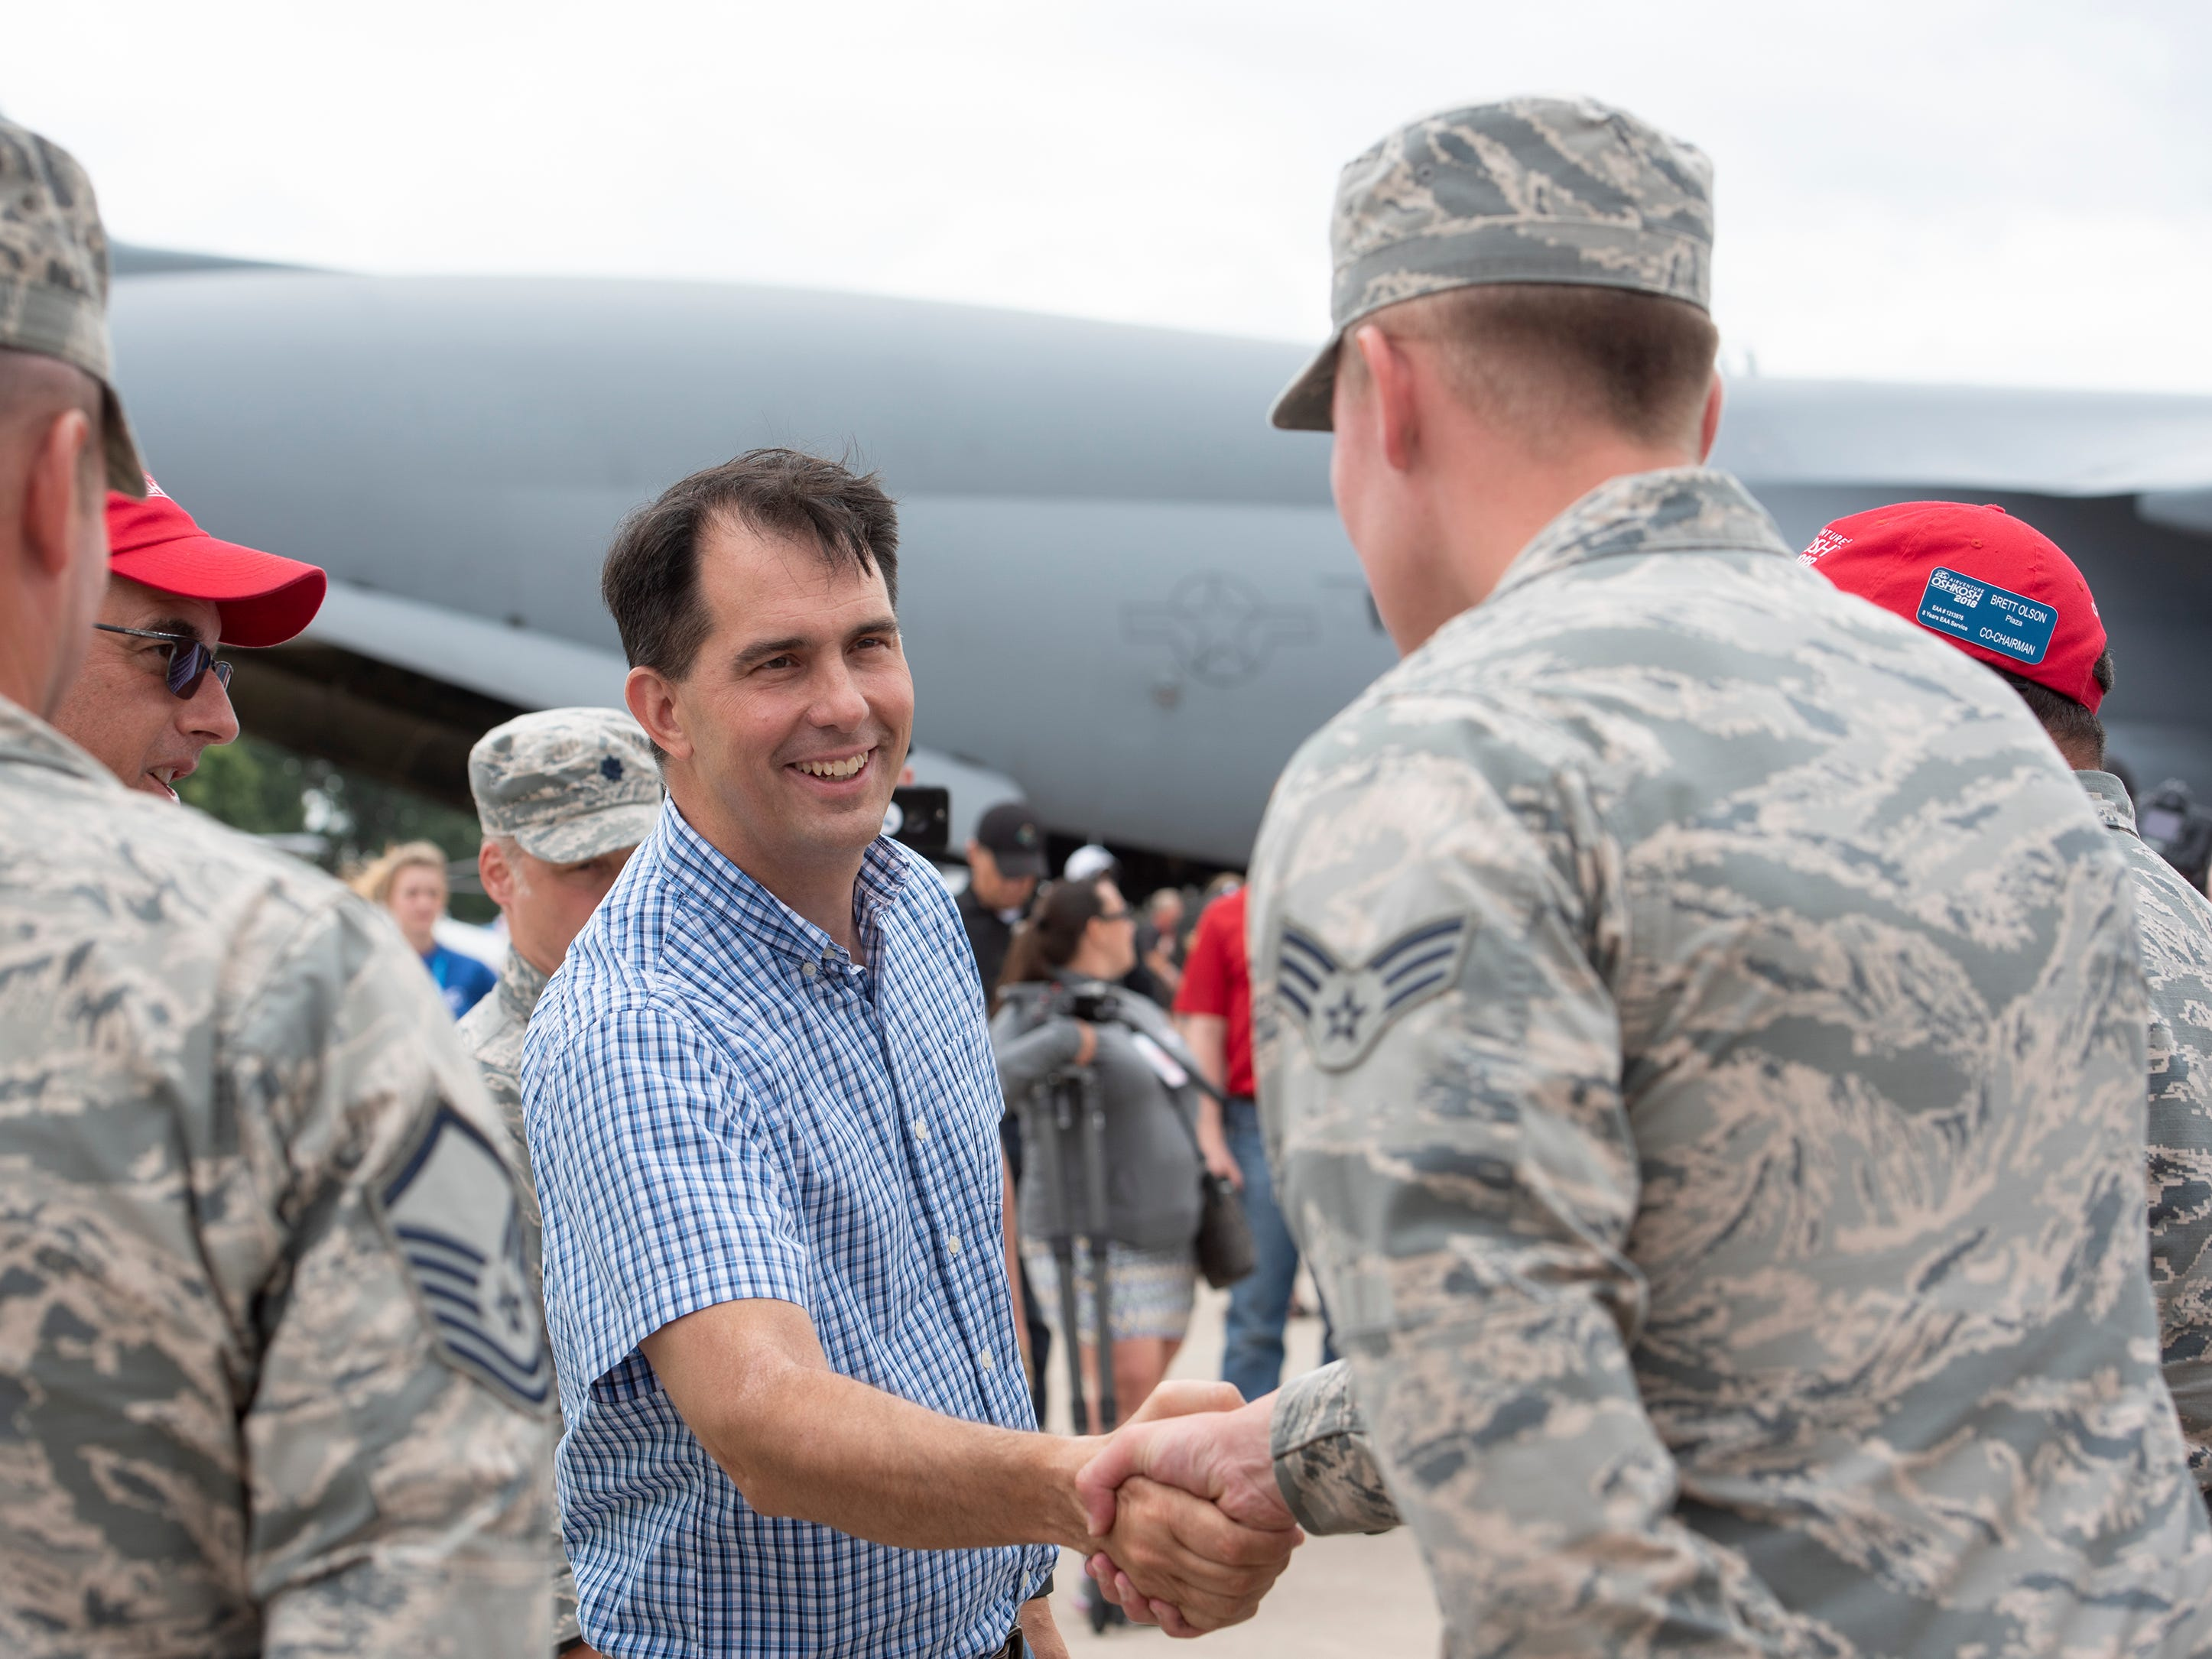 Gov. Scott Walker greets members of the Wisconsin Air National Guard in Boeing Plaza at AirVenture in Oshkosh, Wis., on Thursday, July 26, 2018.